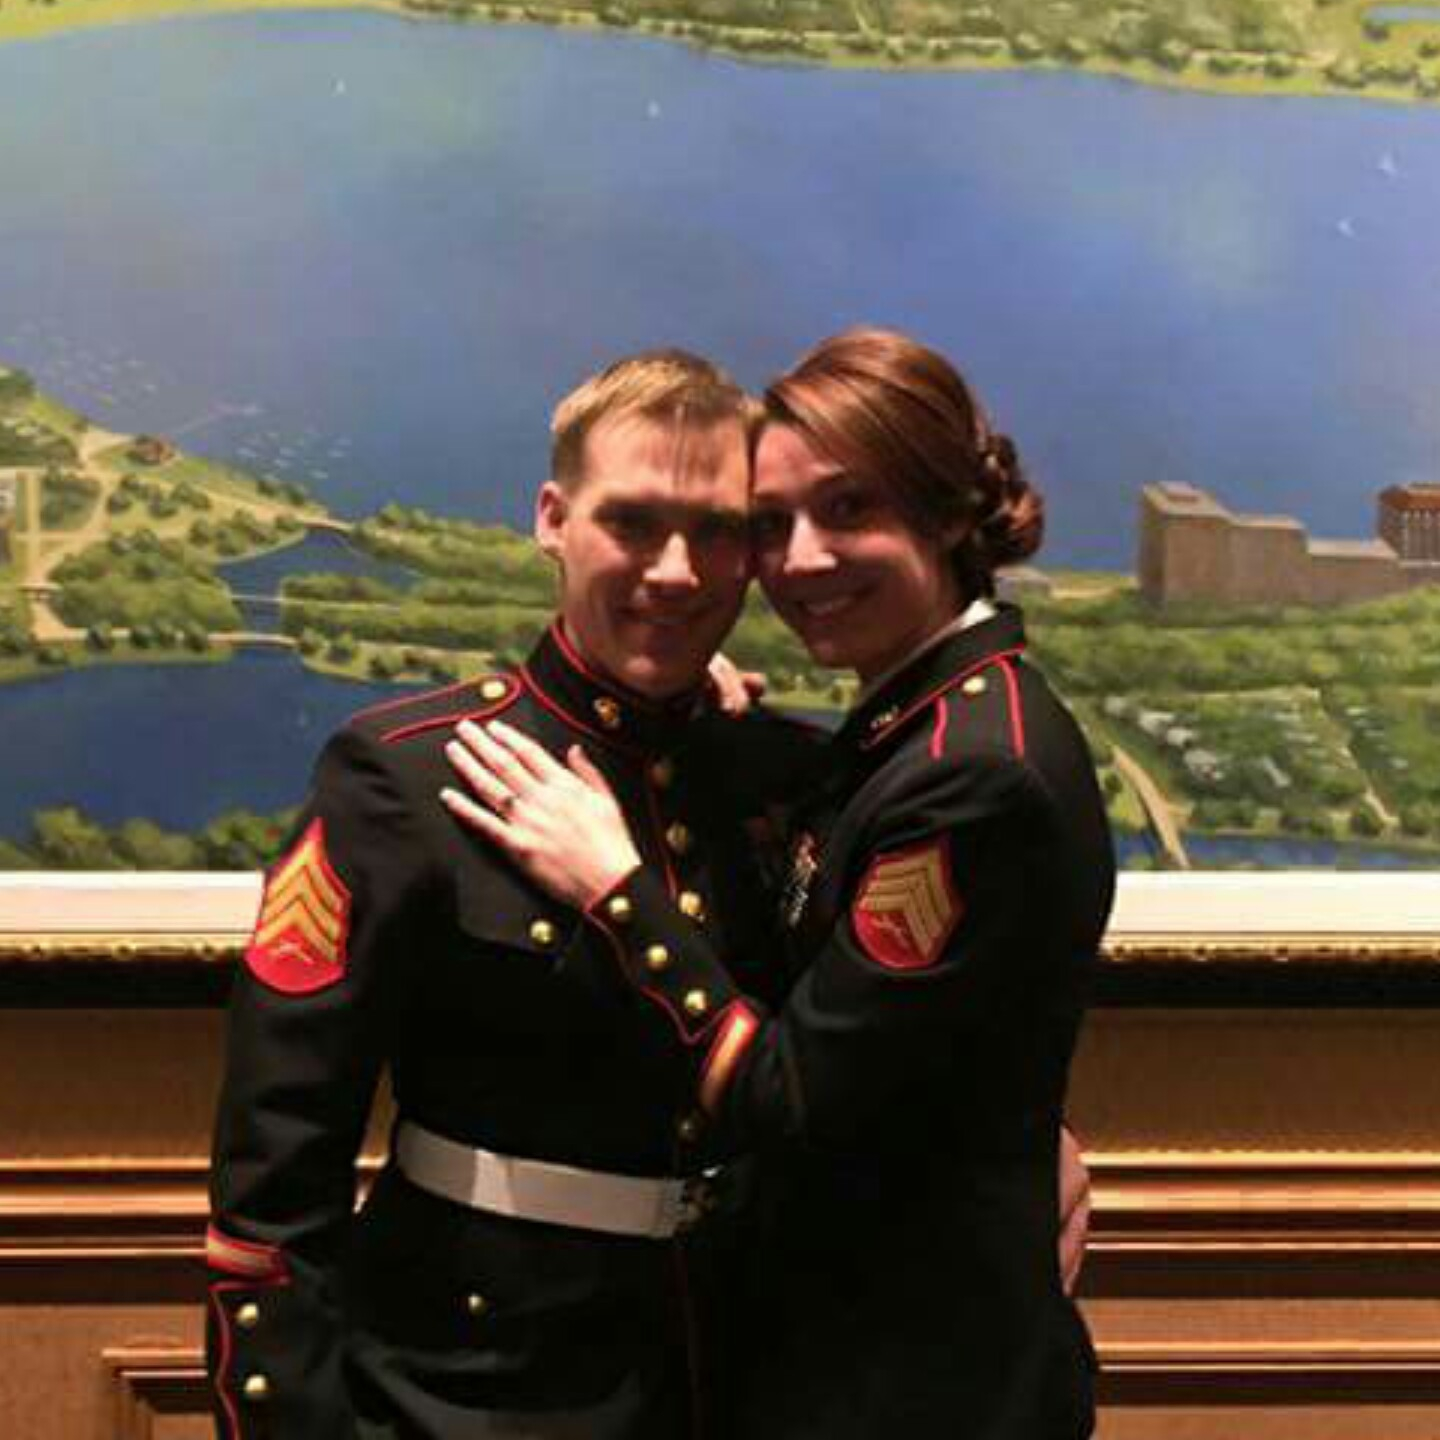 She was born into a military family. Justine and her husband, Levi are Marines.